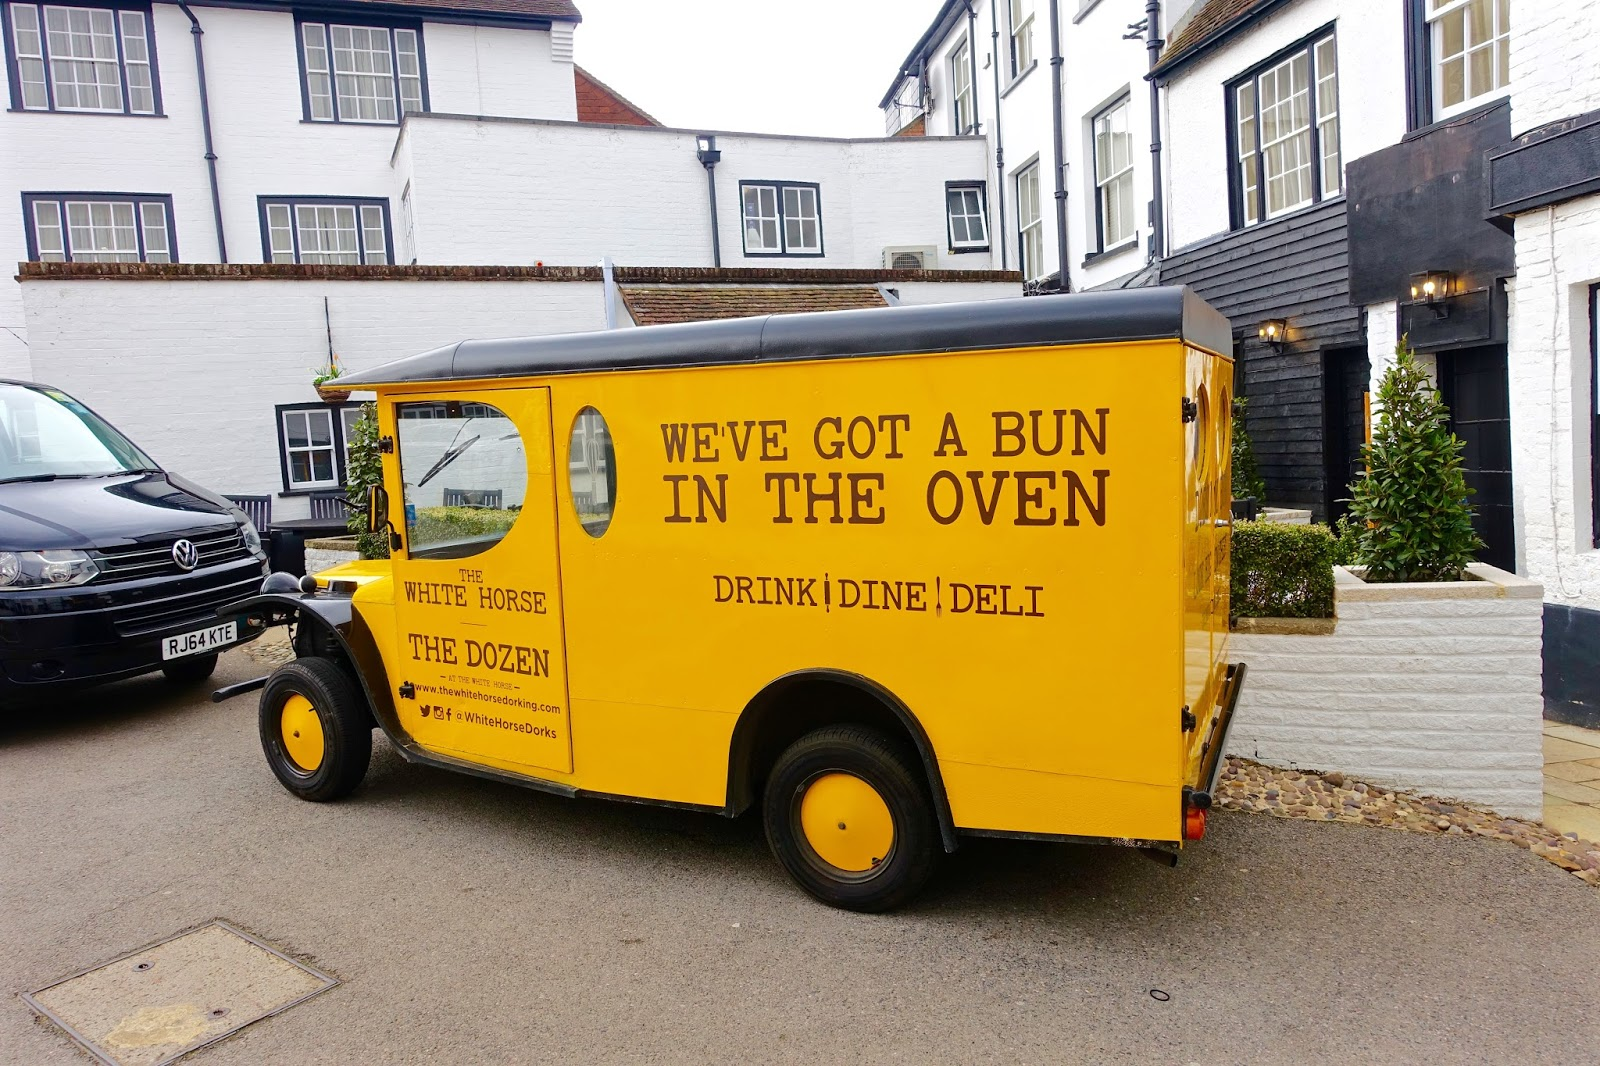 we've got a bun in the oven van